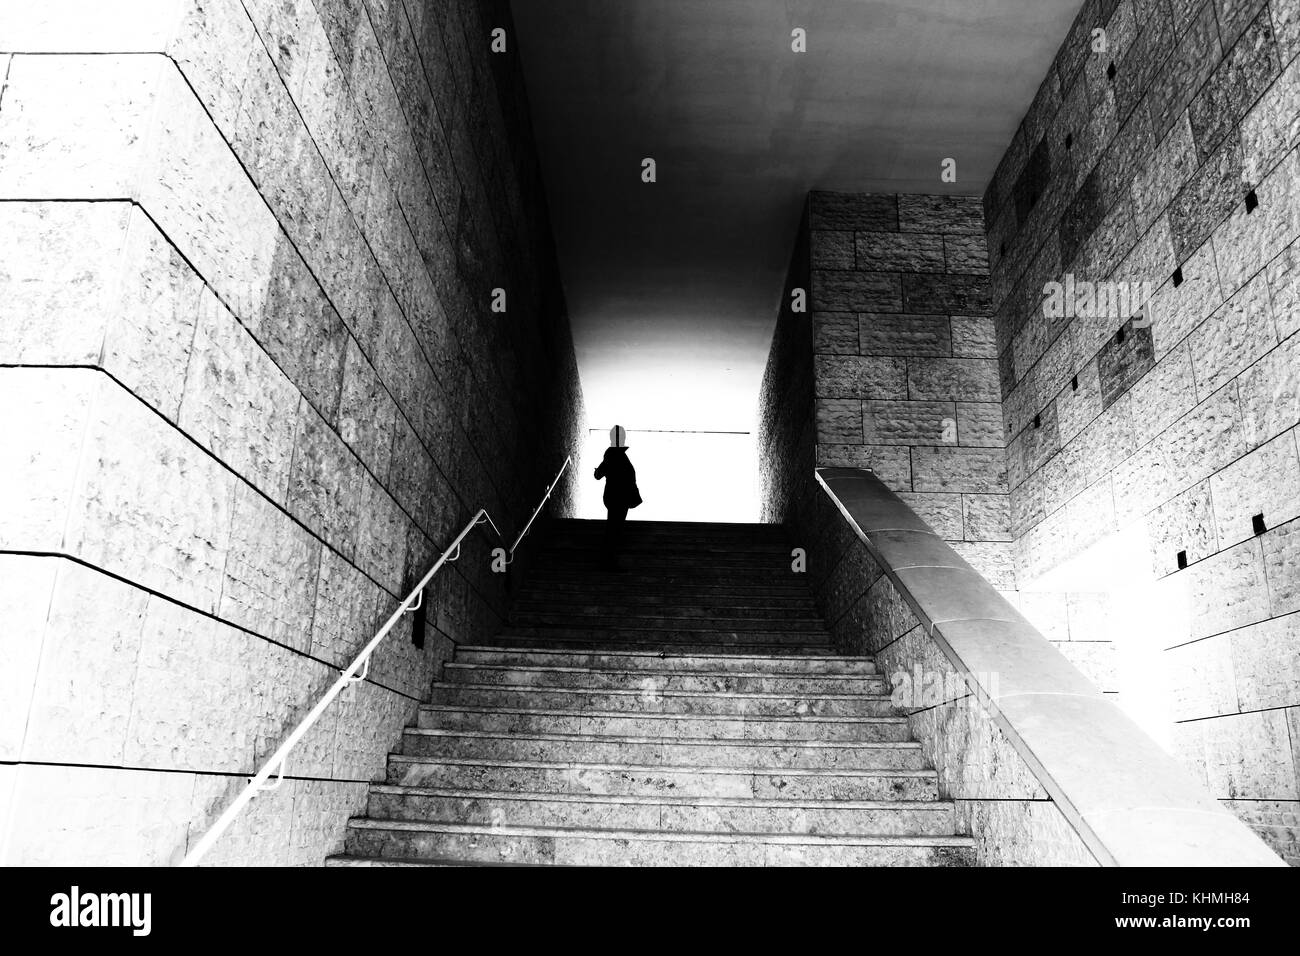 Silhouette at the end of the stairs - Stock Image